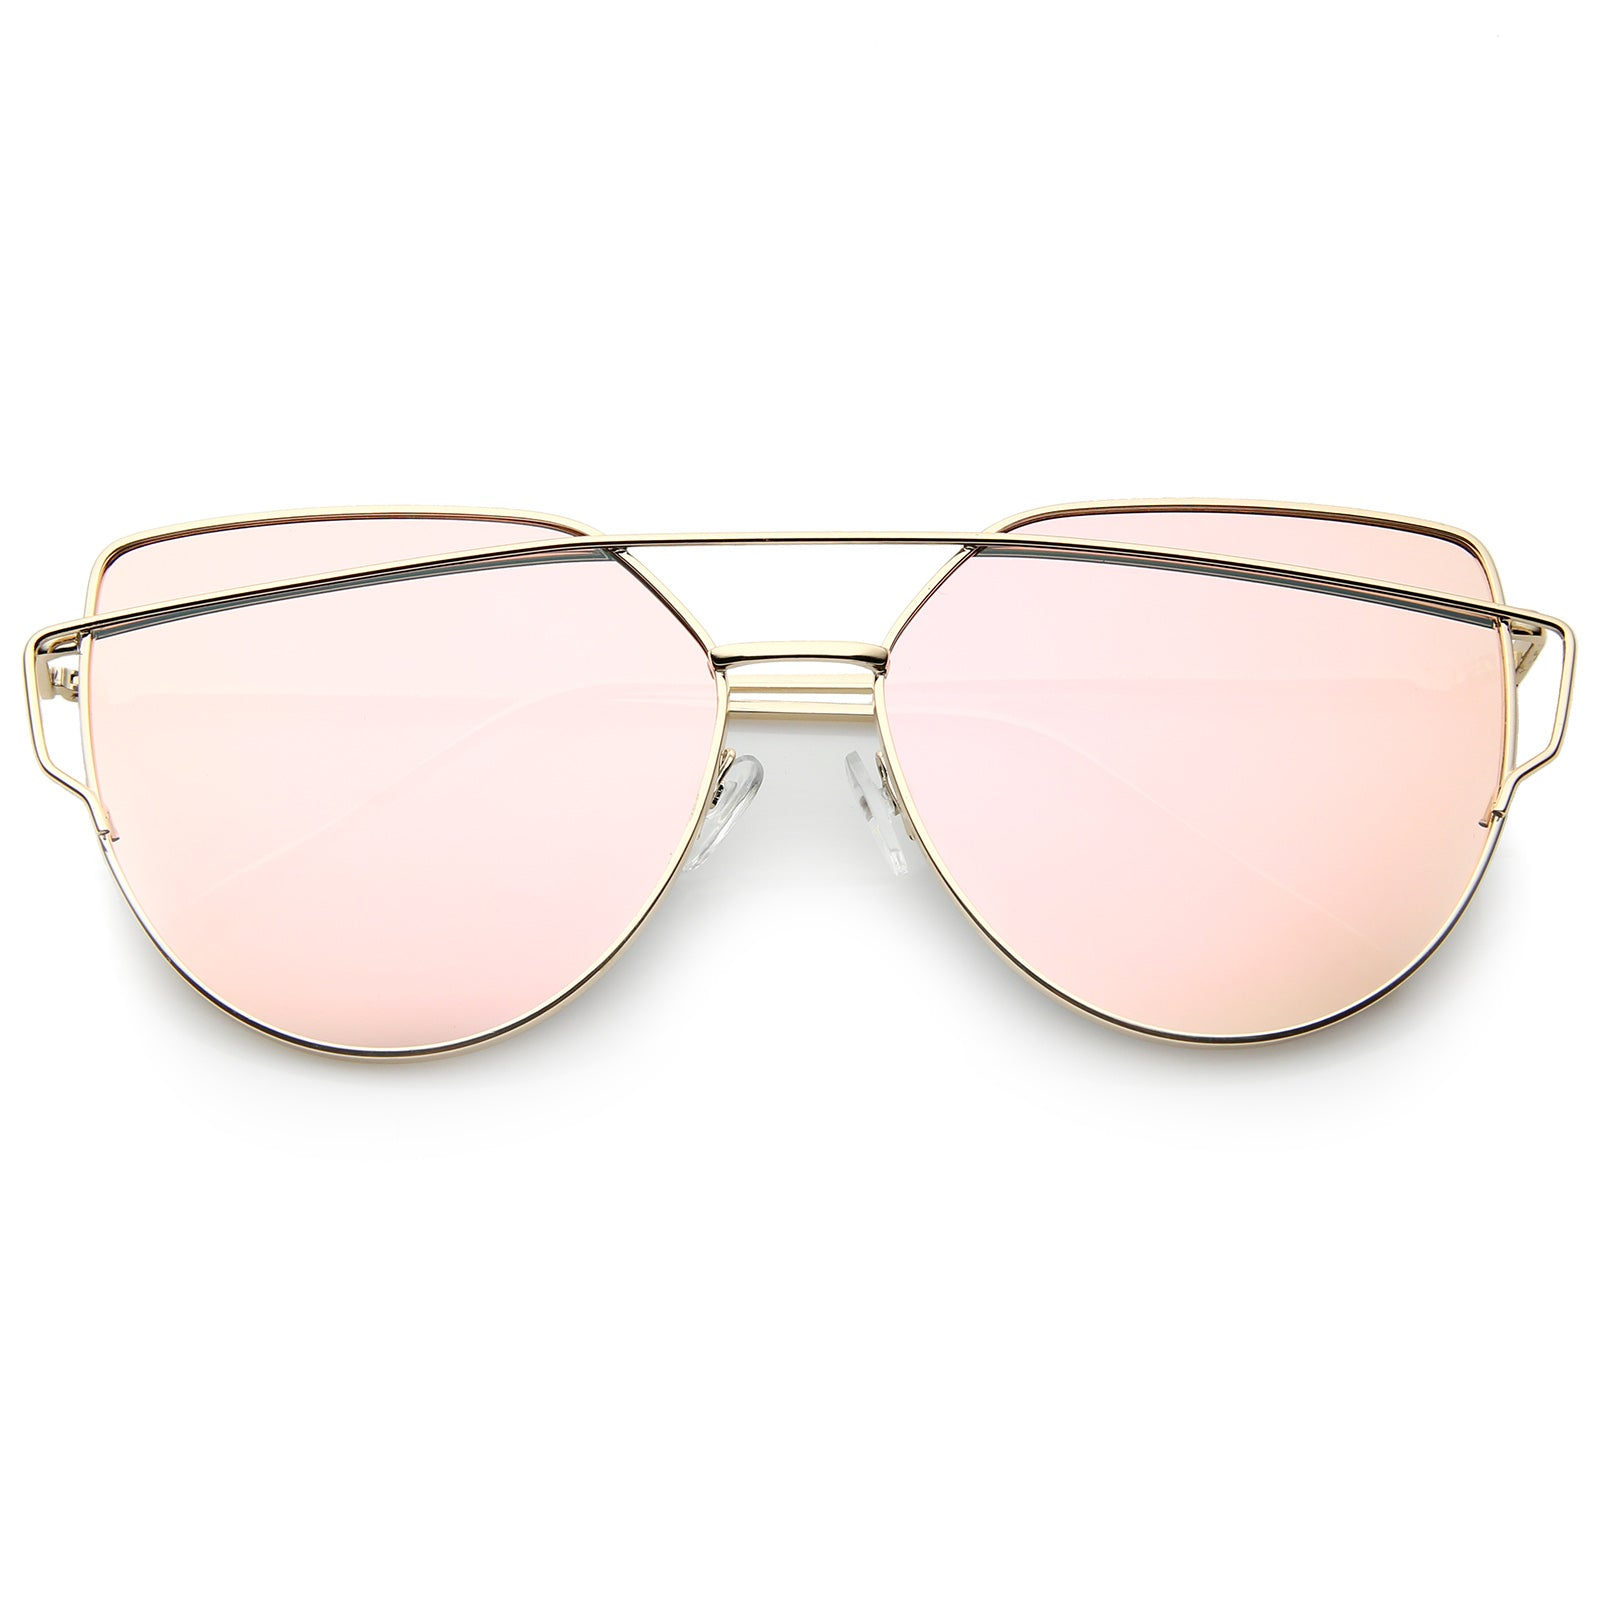 Oversize Thin Cross Brow Mirrored Flat Lens Sunglasses A545